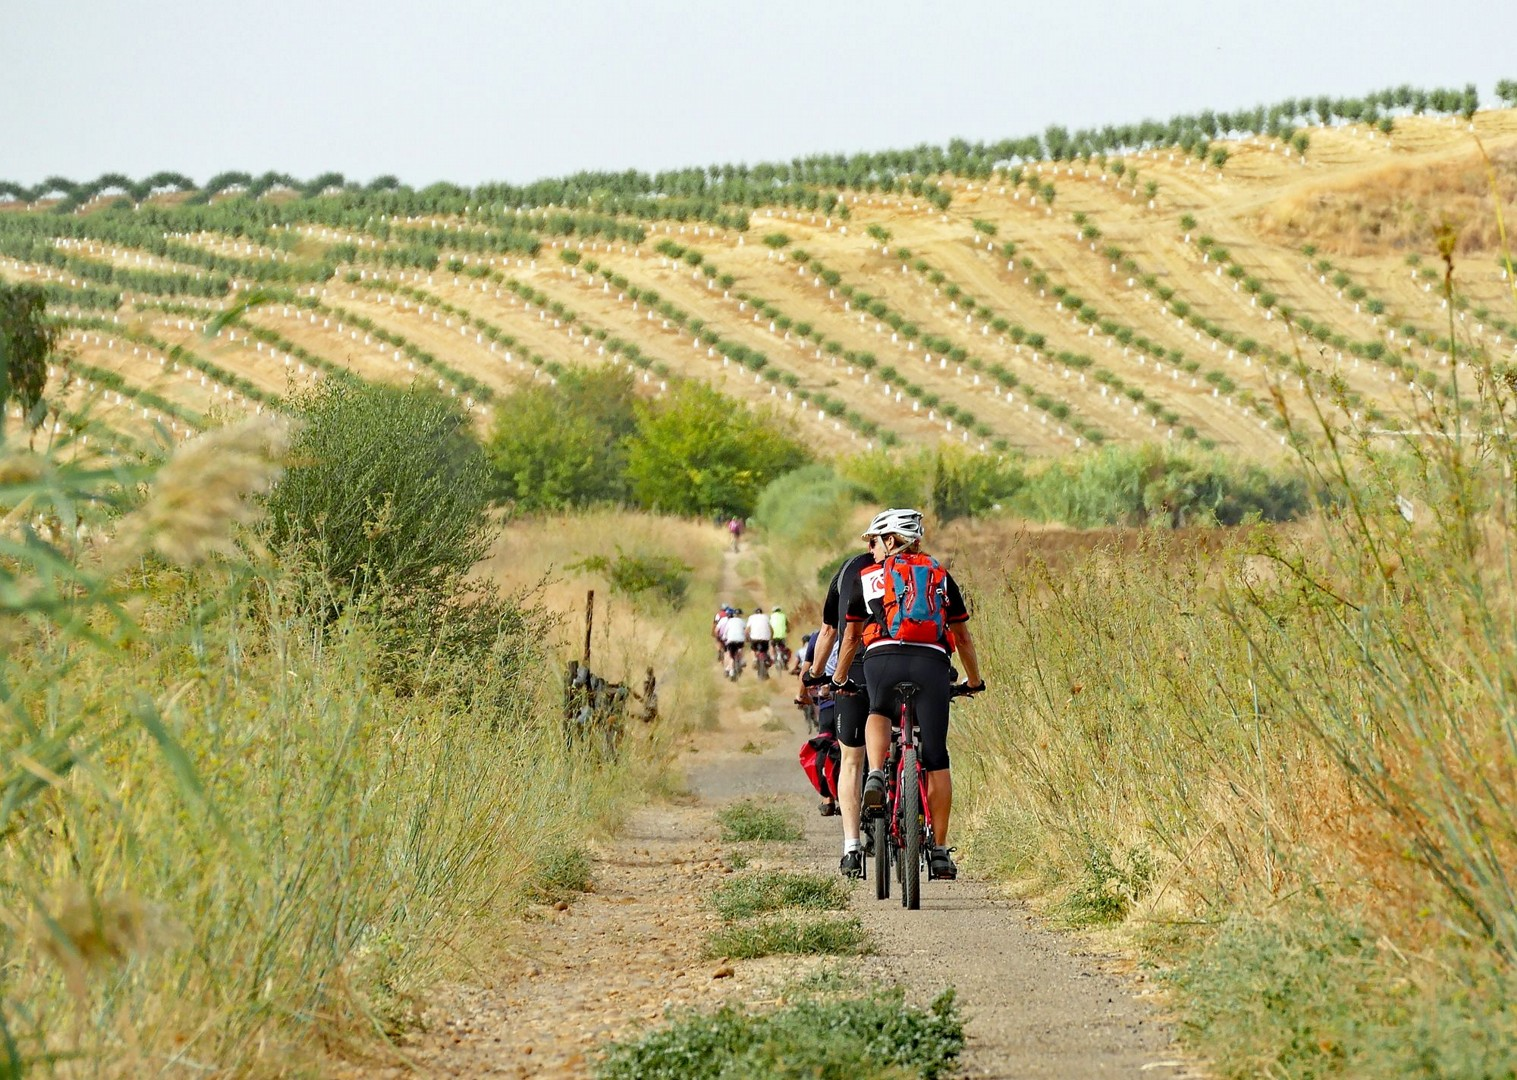 andalucia-cycling-holiday-in-spain-granada-seville.jpg - Spain - Granada to Seville - Leisure Cycling